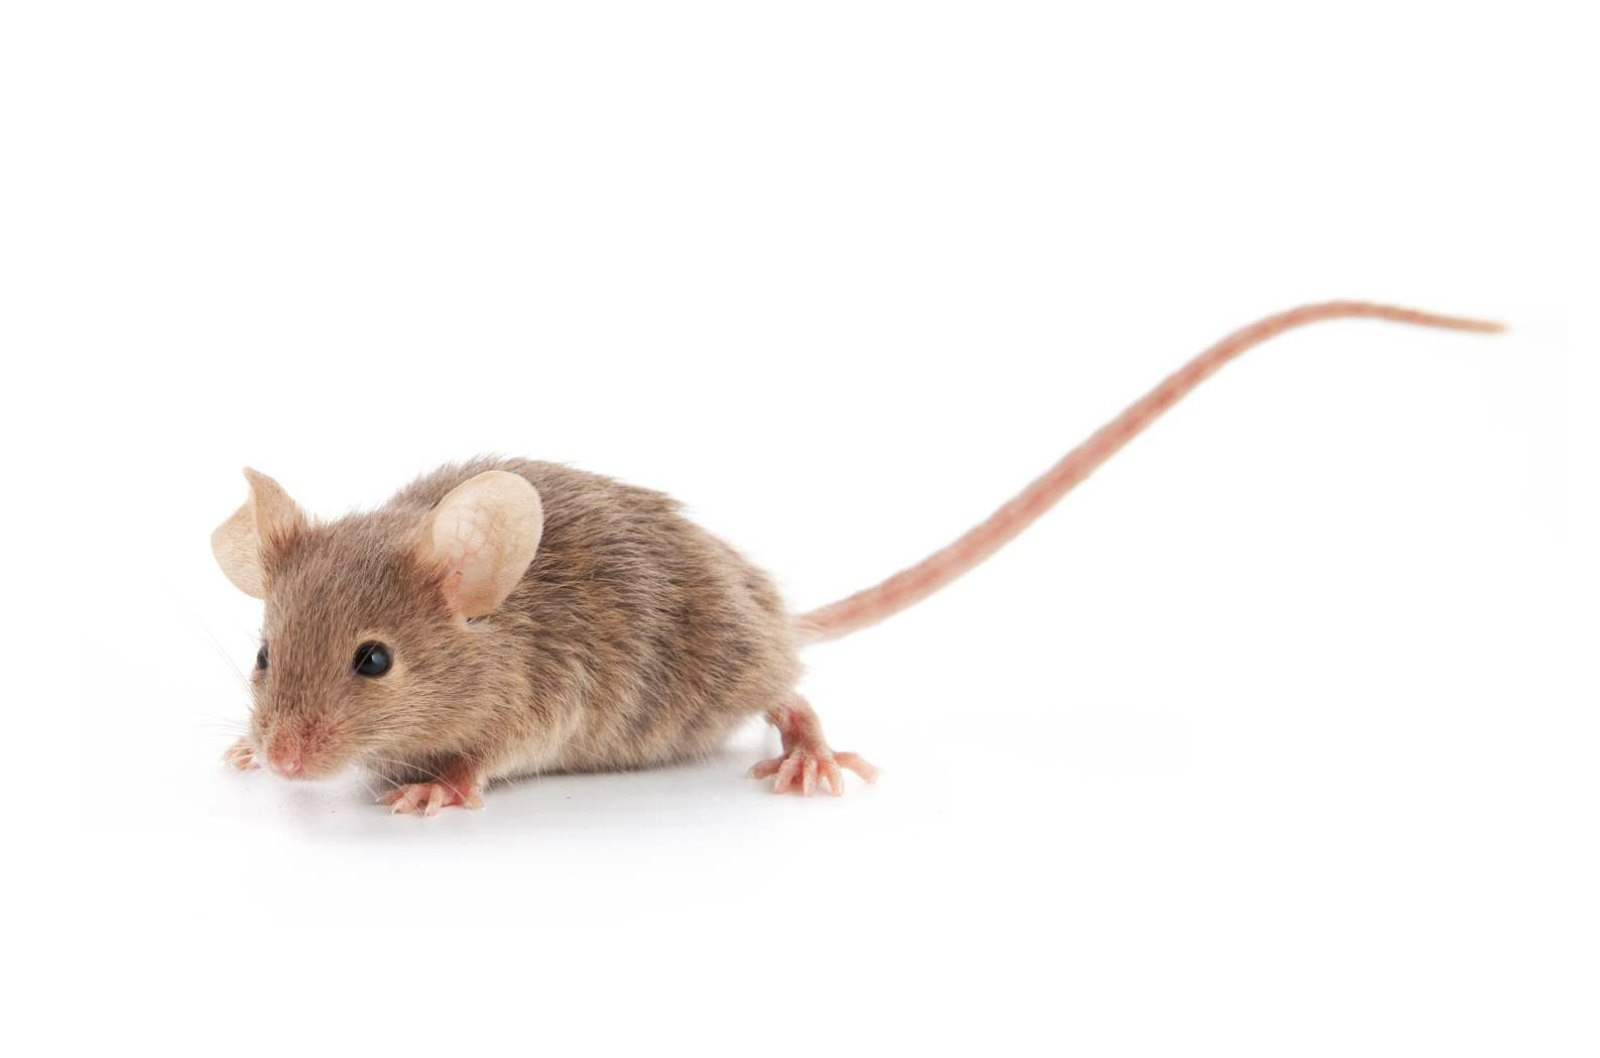 Of Mice and Women: Chemically Altered Rodents Help Researchers Study Diseases in Postmenopausal Women